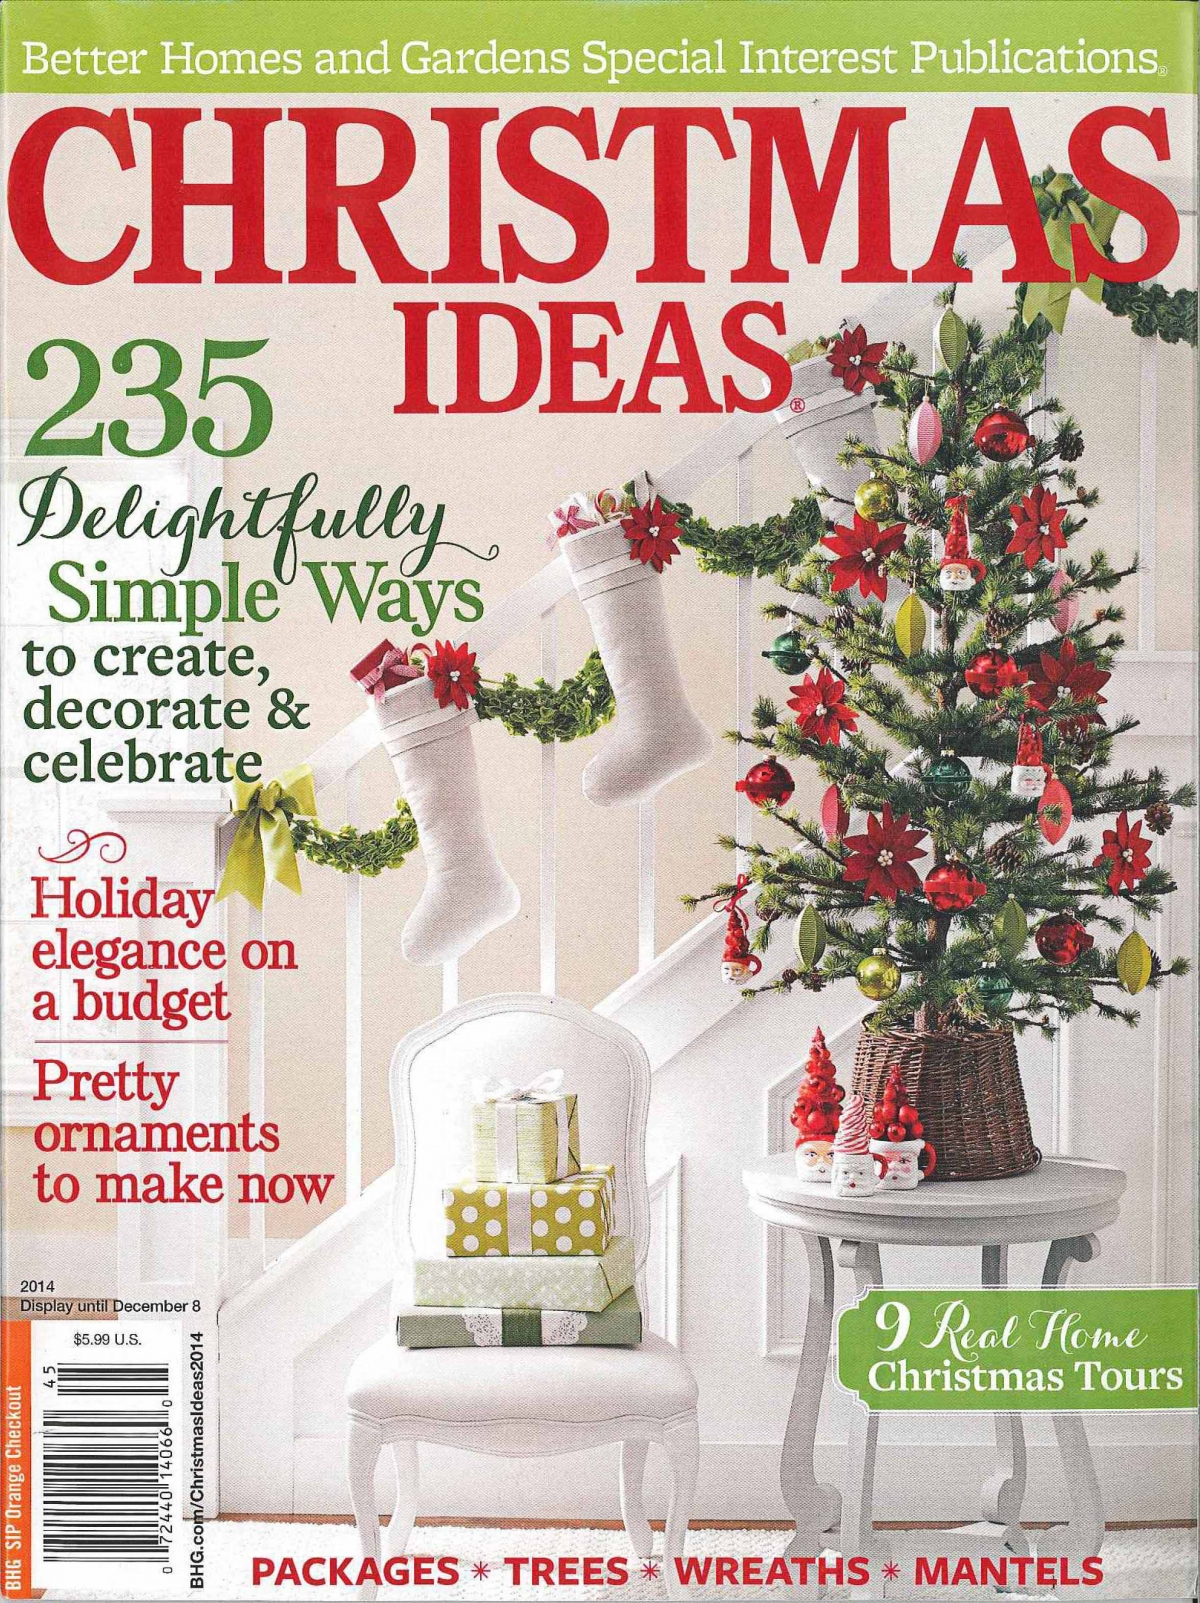 Better homes and gardens christmas ideas loralee lewis Better homes and gardens christmas special